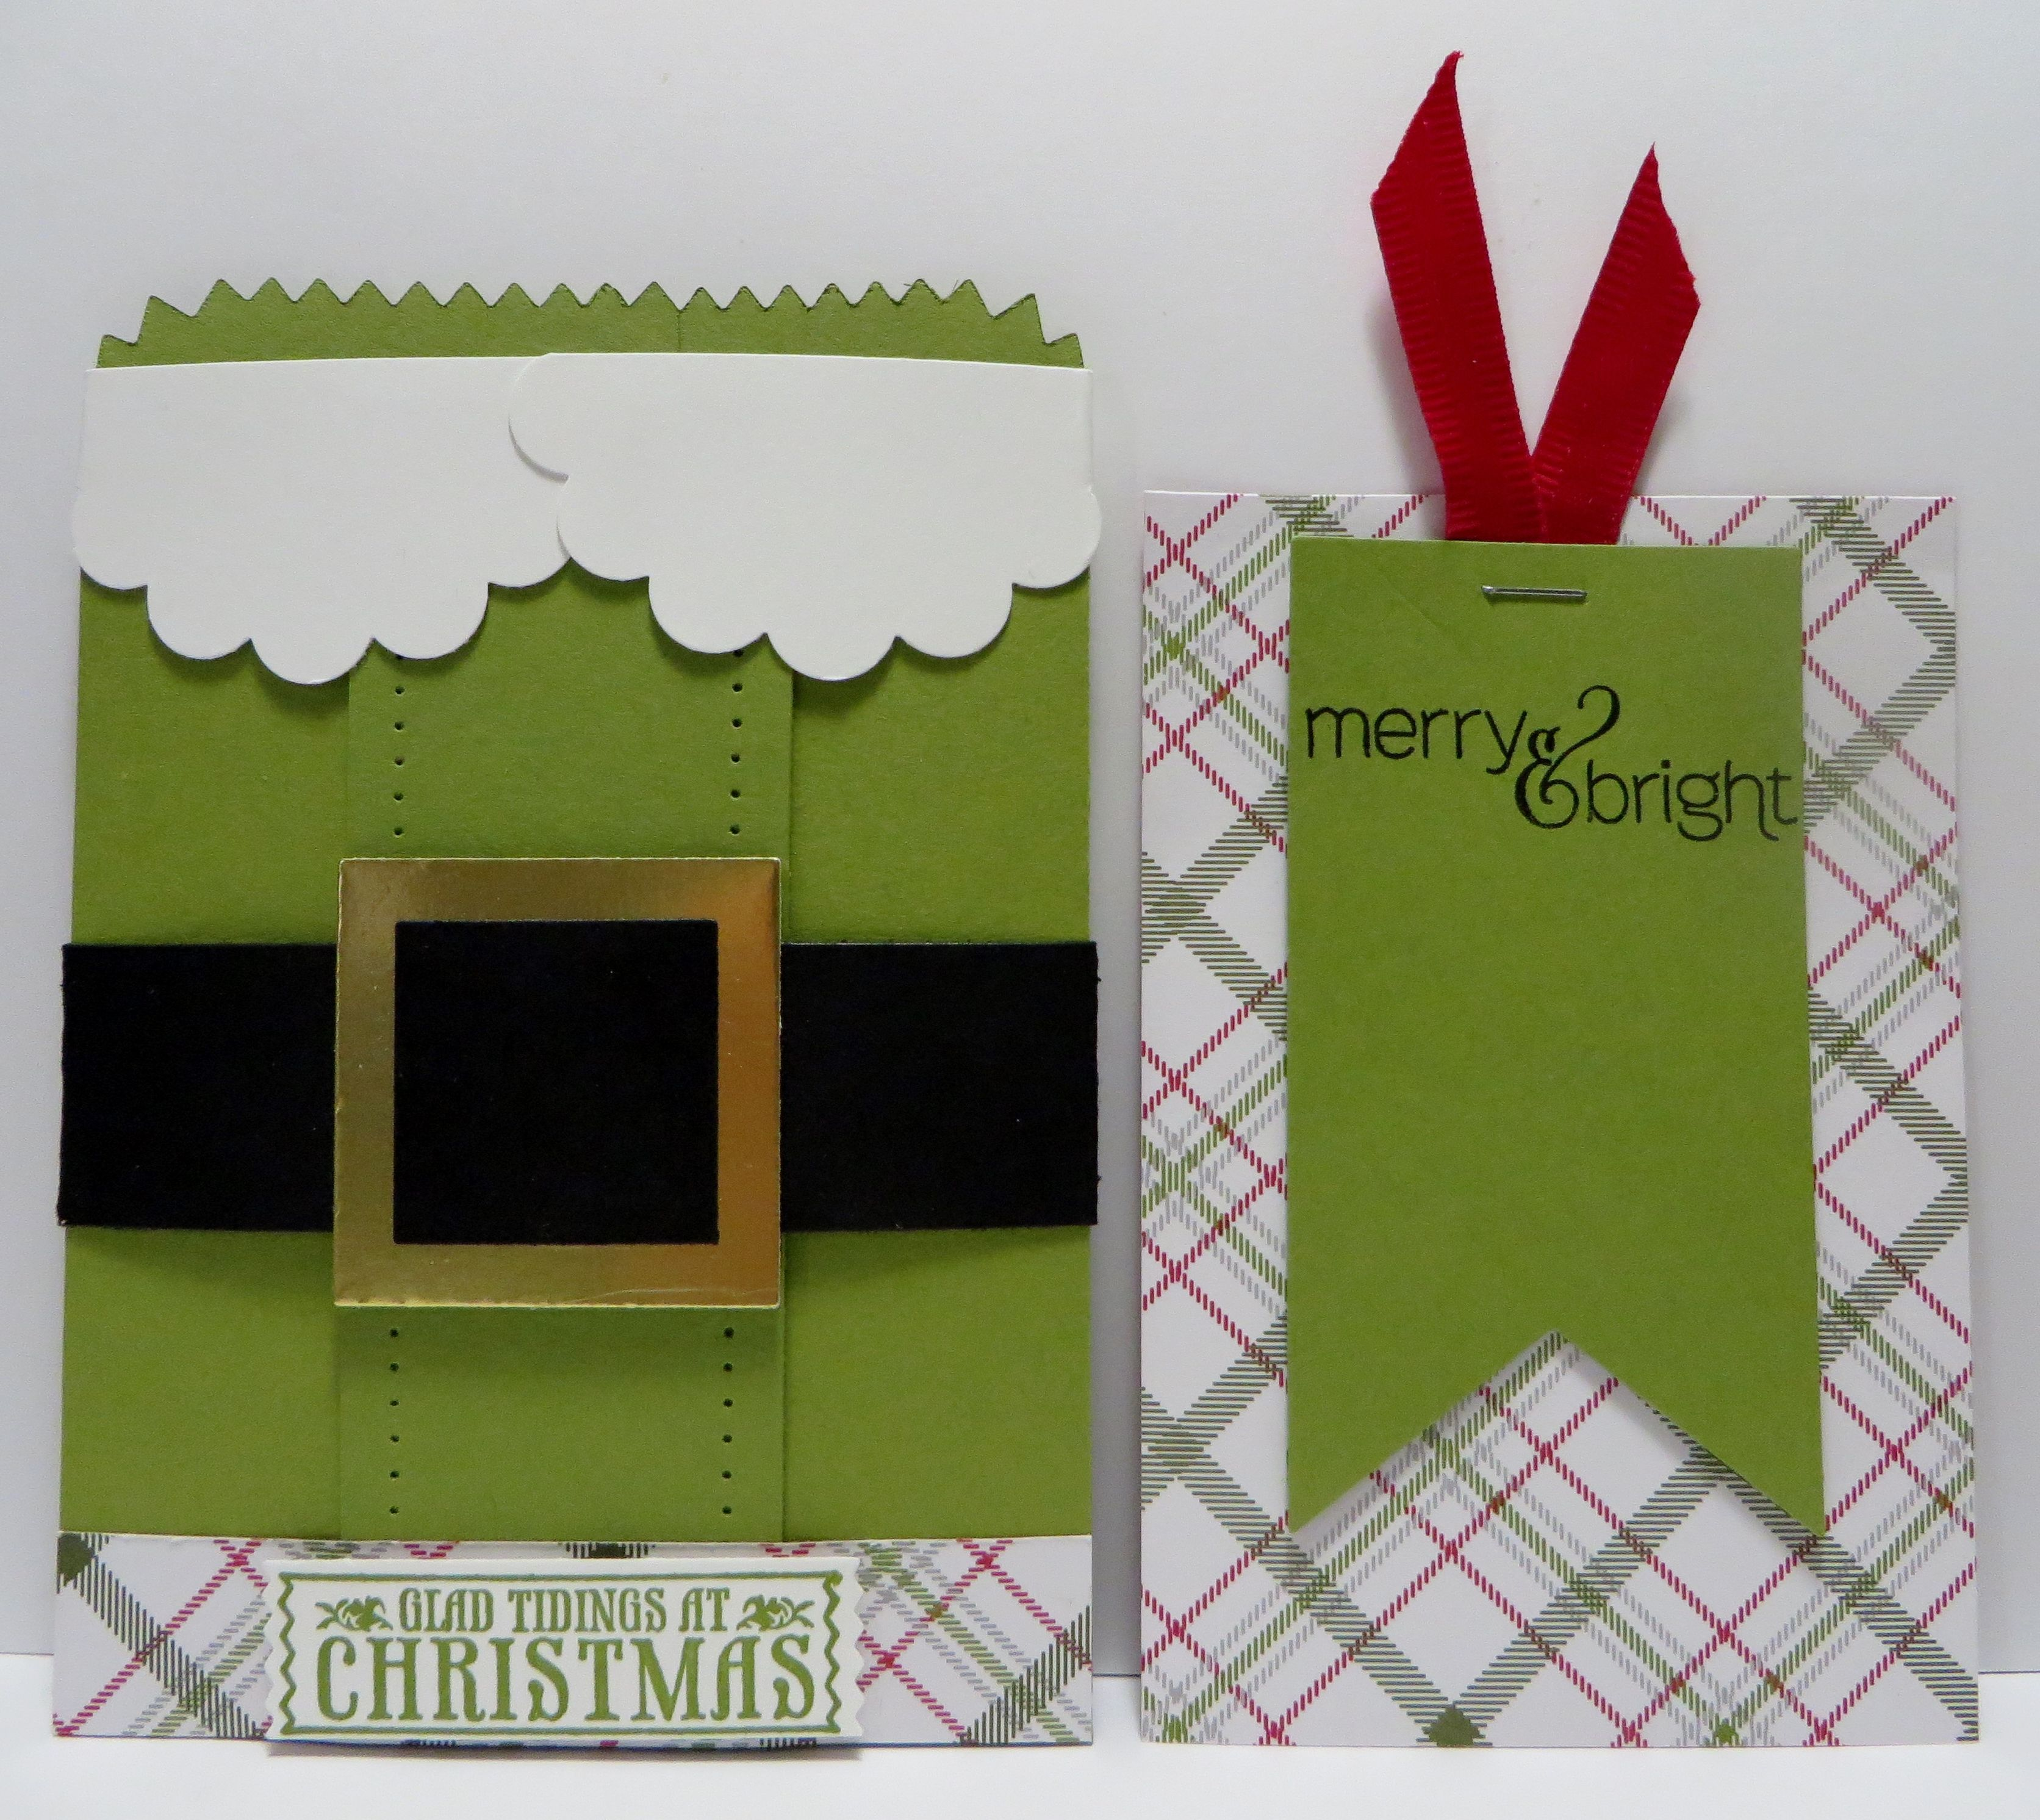 Stampin' Up Elf Mini Treat Bag with Note Card Insert made by Lynn Gauthier using SU Mistletoe & Holly Paper Pumpkin and SU Antique Tags Stamp Sets.  Go to http://lynnslocker.blogspot.com/2015/11/stampin-up-elf-mini-treat-bag-pocket.html for instruction on how to make this project.